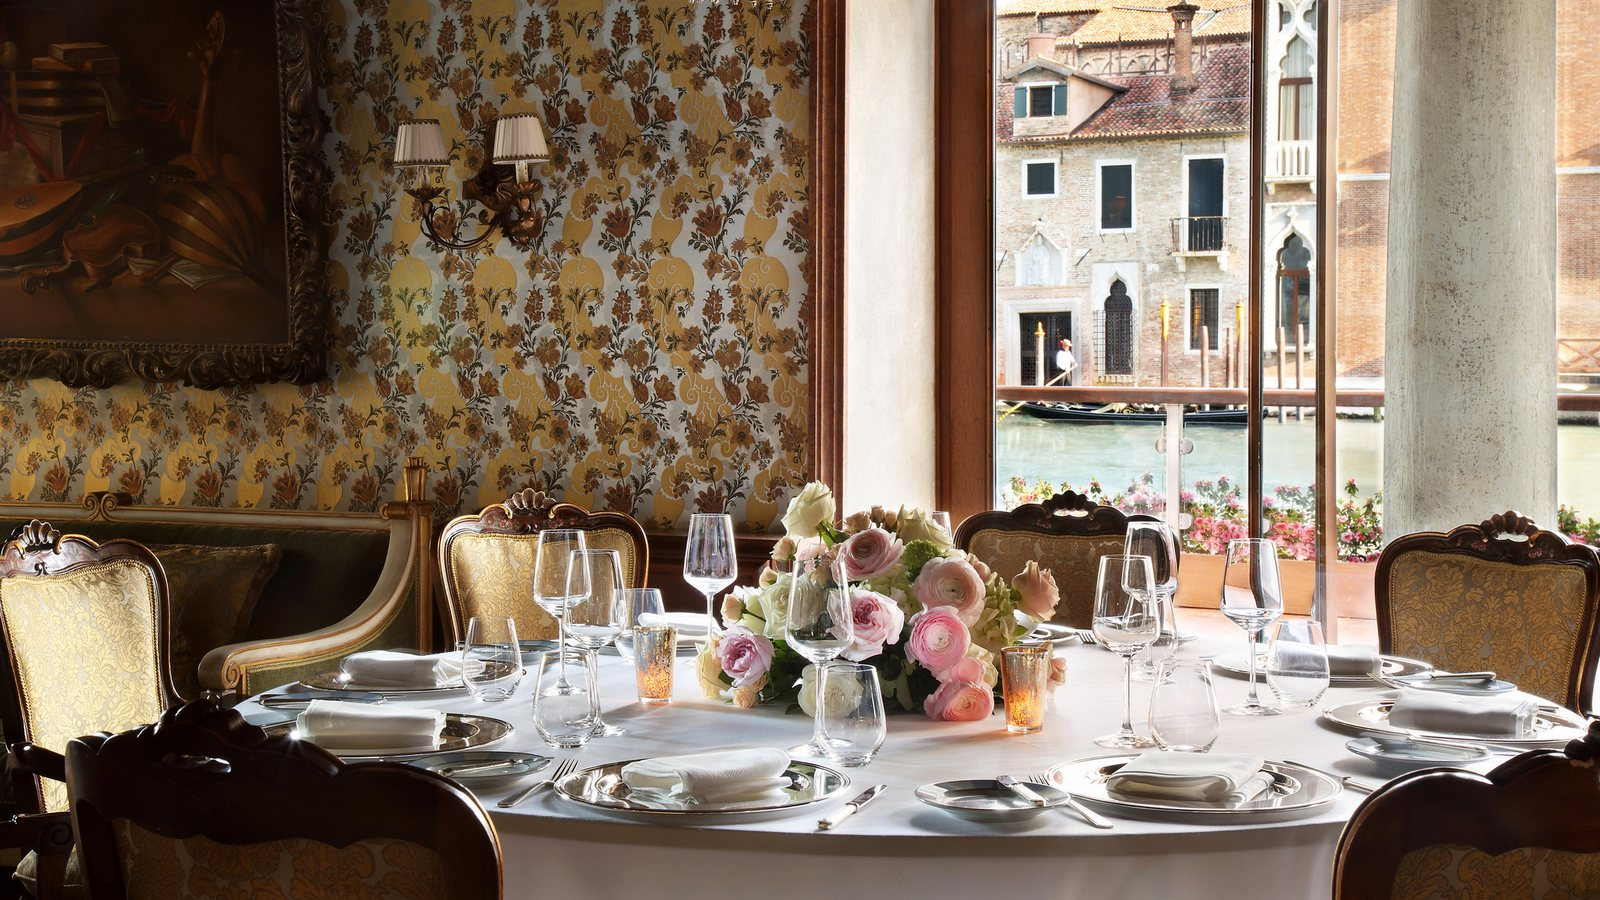 The-Gritti-Palace-Venice-Meetings-Club-del-Doge-Restaurant-Wedding-Setting